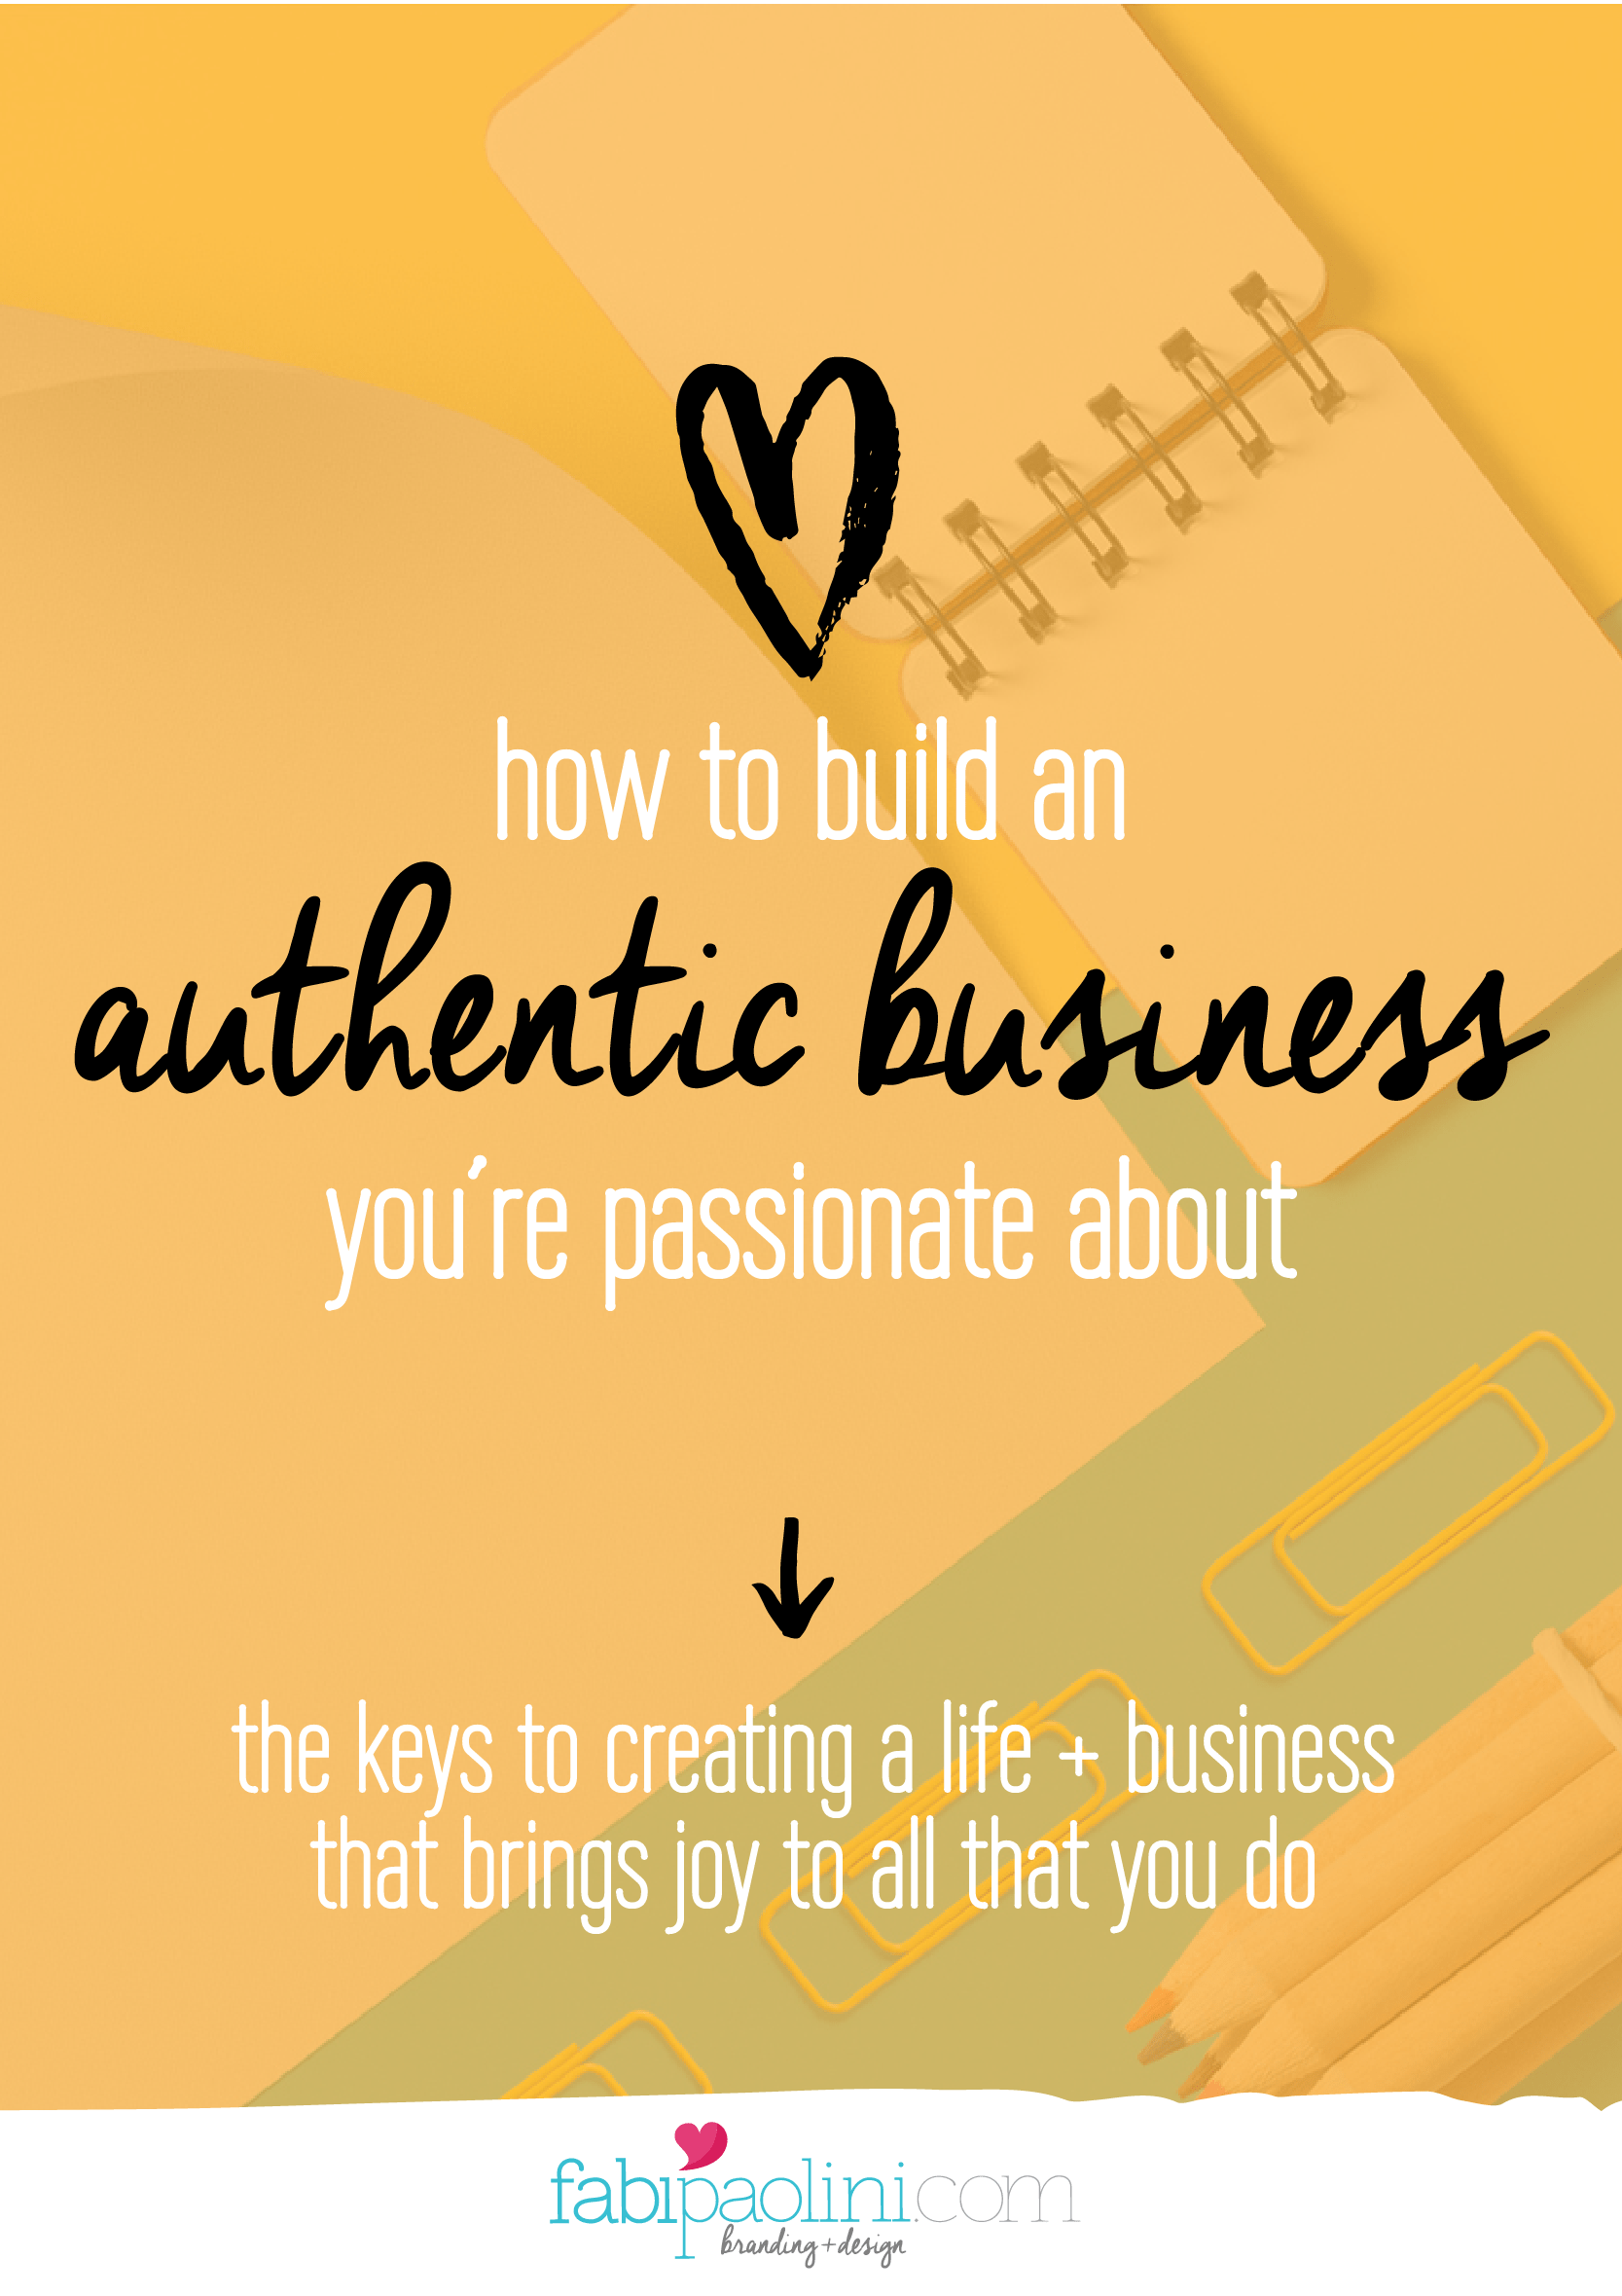 e5b357ed6a Being authentic in business means being true to who you are and what you  love. But